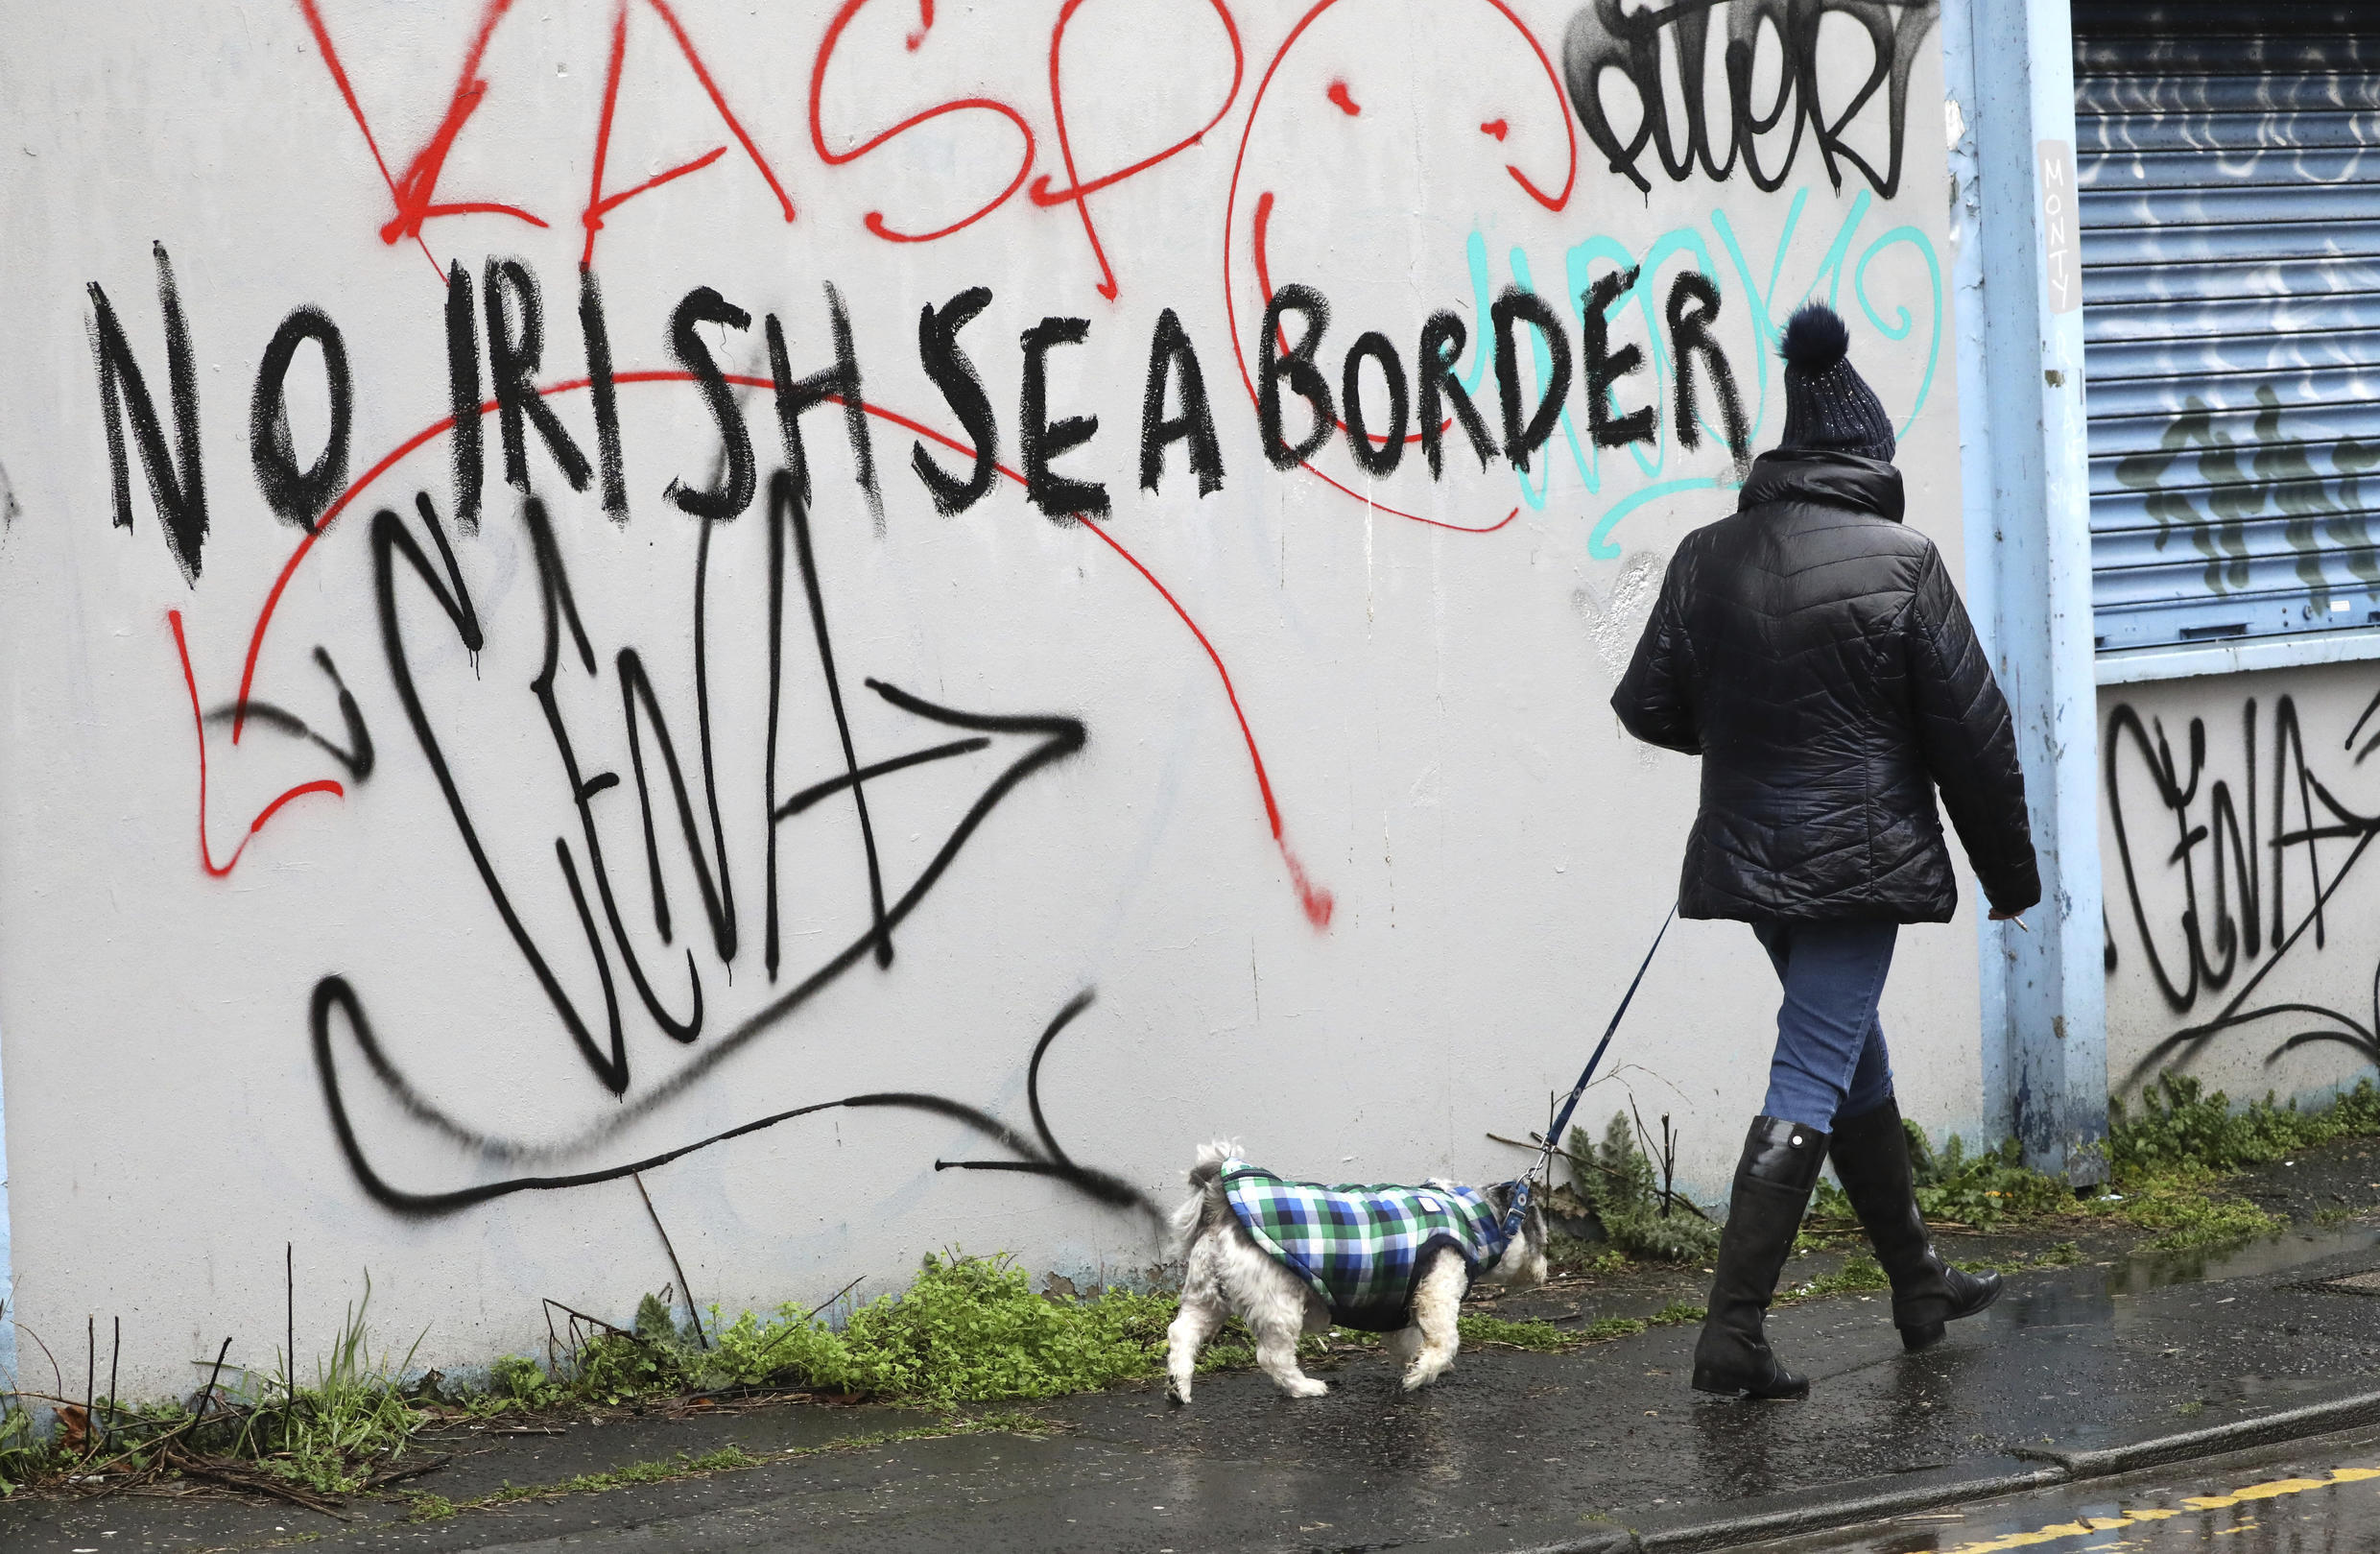 A woman walks her dog past past graffiti with the words 'No Irish Sea Border' in Belfast city centre, Northern Ireland, Wednesday, Feb. 3, 2021. Politicians from Britain, Northern Ireland and the European Union are meeting to defuse post-Brexit trade tensions that have shaken Northern Ireland's delicate political balance. British Cabinet minister Michael Gove, European Commission Vice President Maros Sefcovic and the leaders of Northern Ireland's Catholic-Protestant power-sharing government will hold a video conference to discuss problems that have erupted barely a month after the U.K. made an economic split from the 27-nation EU.